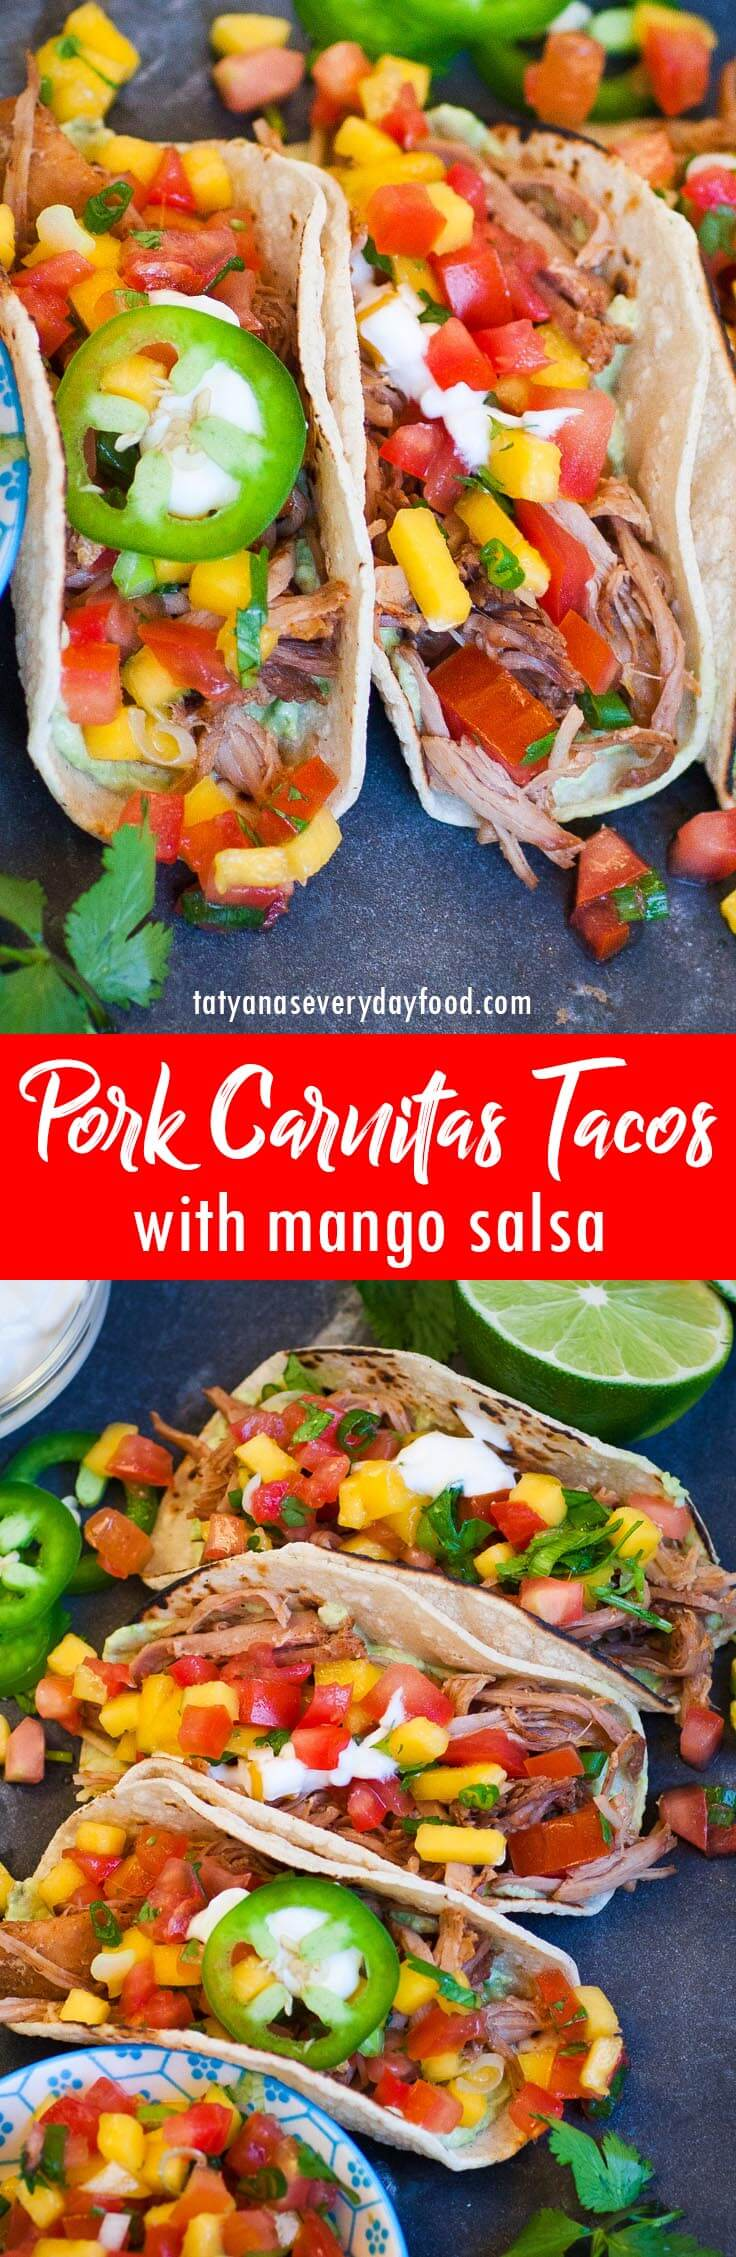 Pork Carnitas Tacos with Mango Salsa recipe